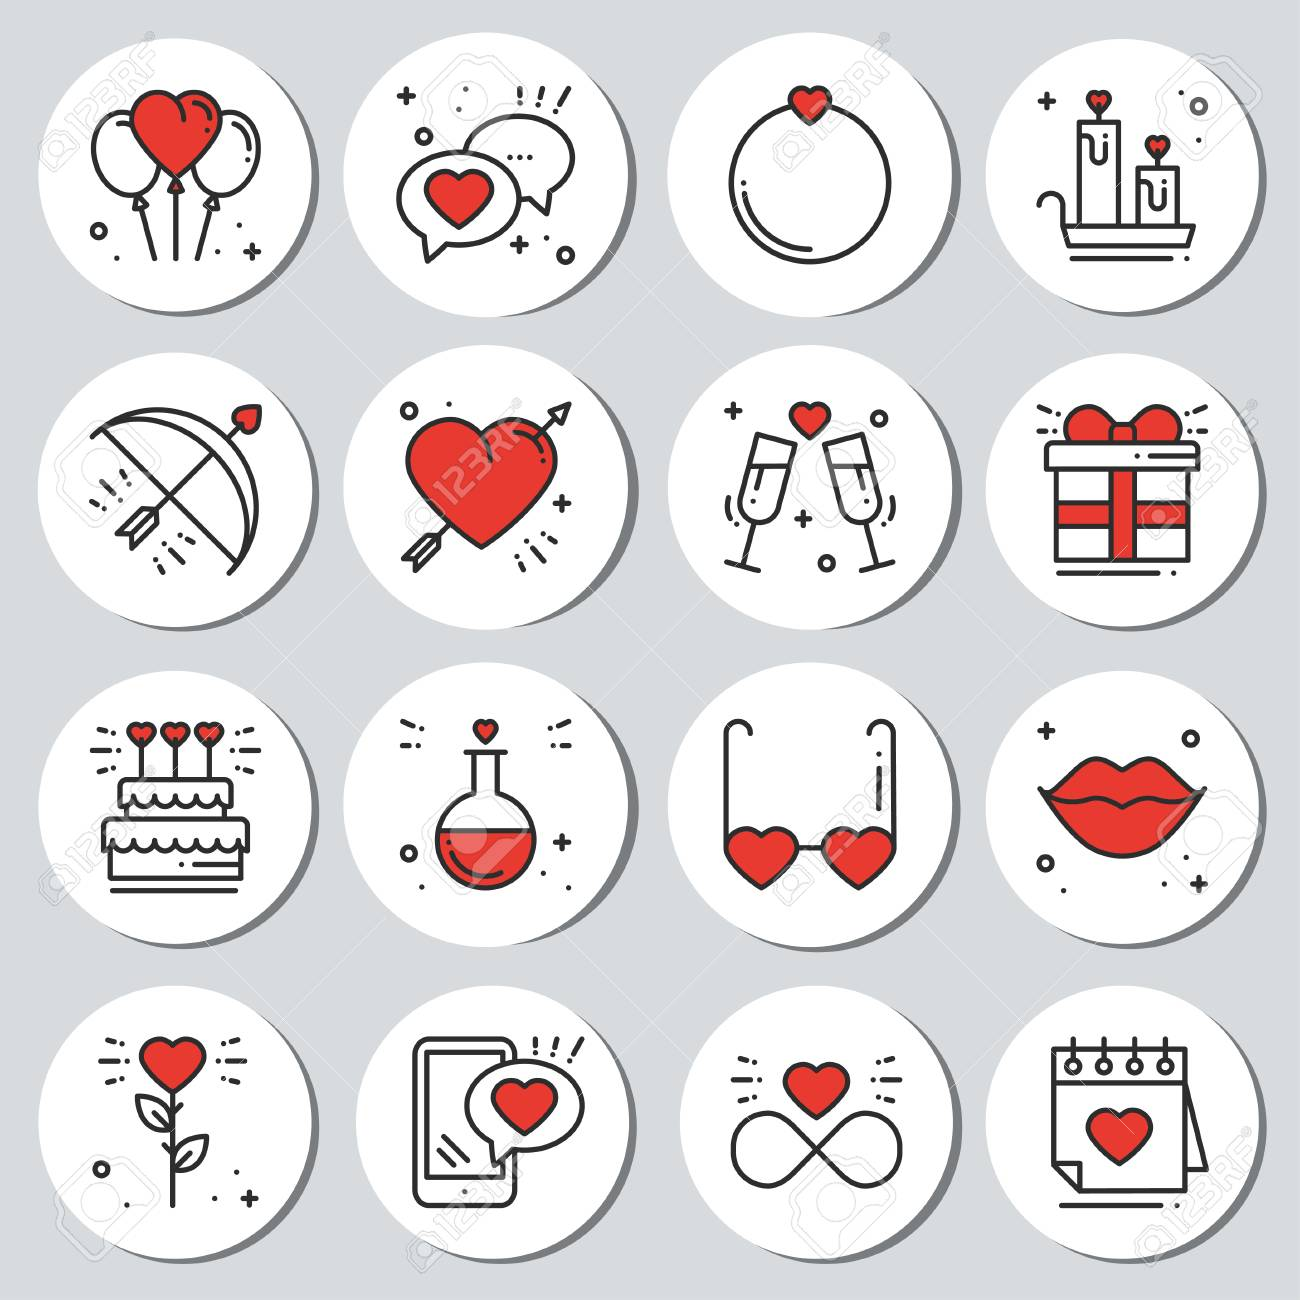 graphic about Valentine Stickers Printable referred to as St Valentines working day spherical printable stickers mounted.